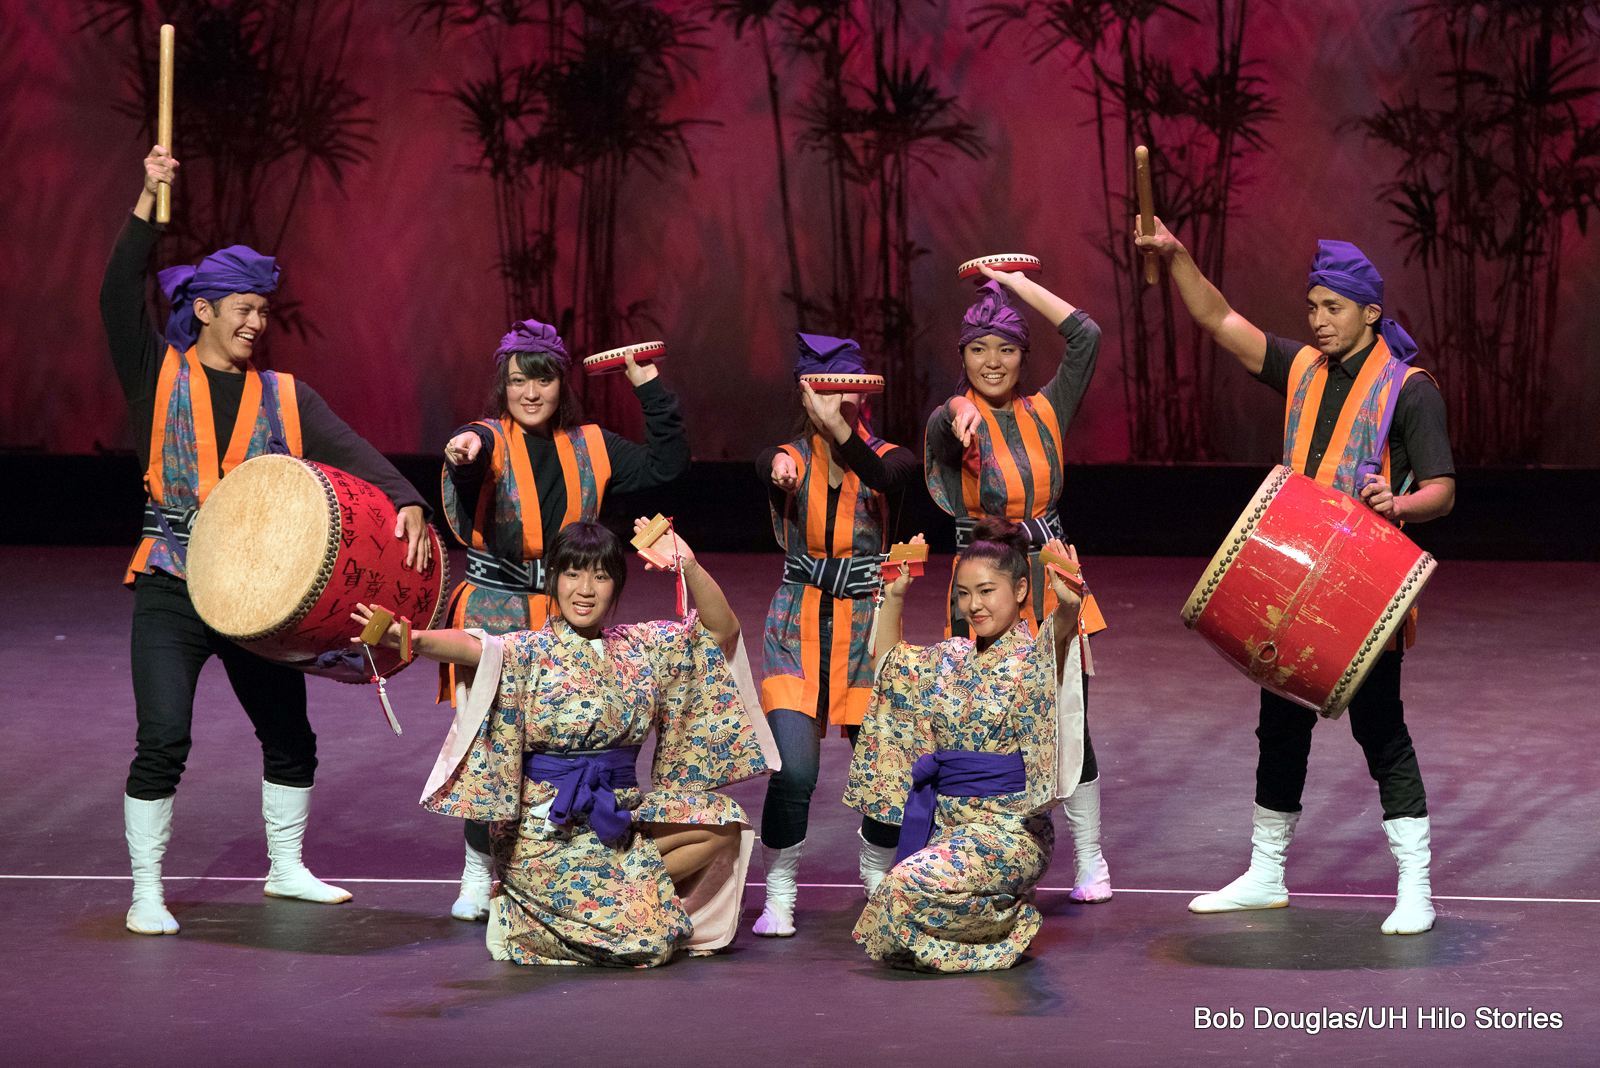 Colorful group of seven dancers in orange and purple costumes, posing just after finishing dance, each holding drums or other percussion instruments. Two women in front wearing kimono with purple sash.